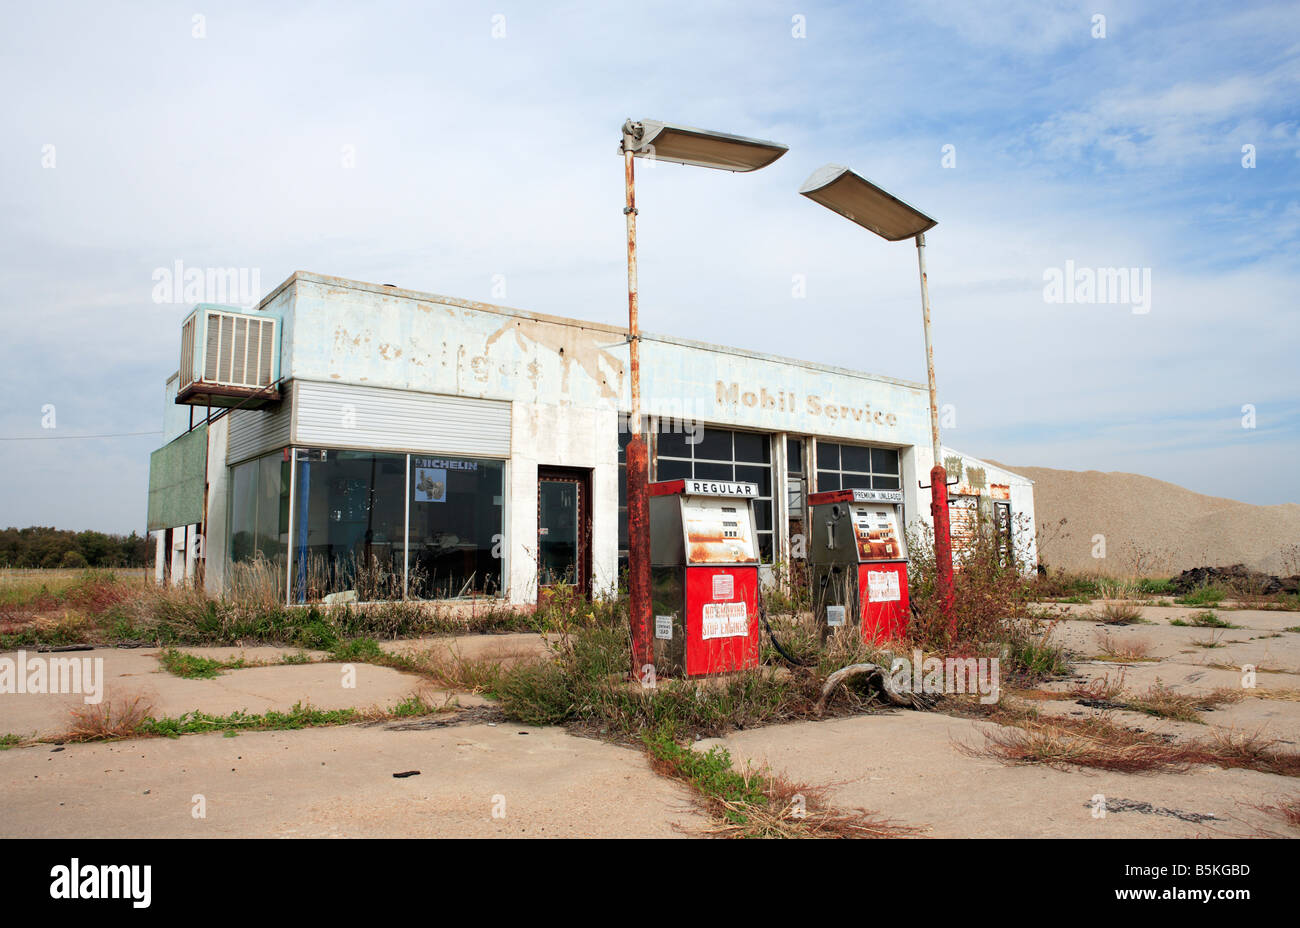 An Abandoned Gas Station In Rural Kansas Usa Stock Photo Alamy